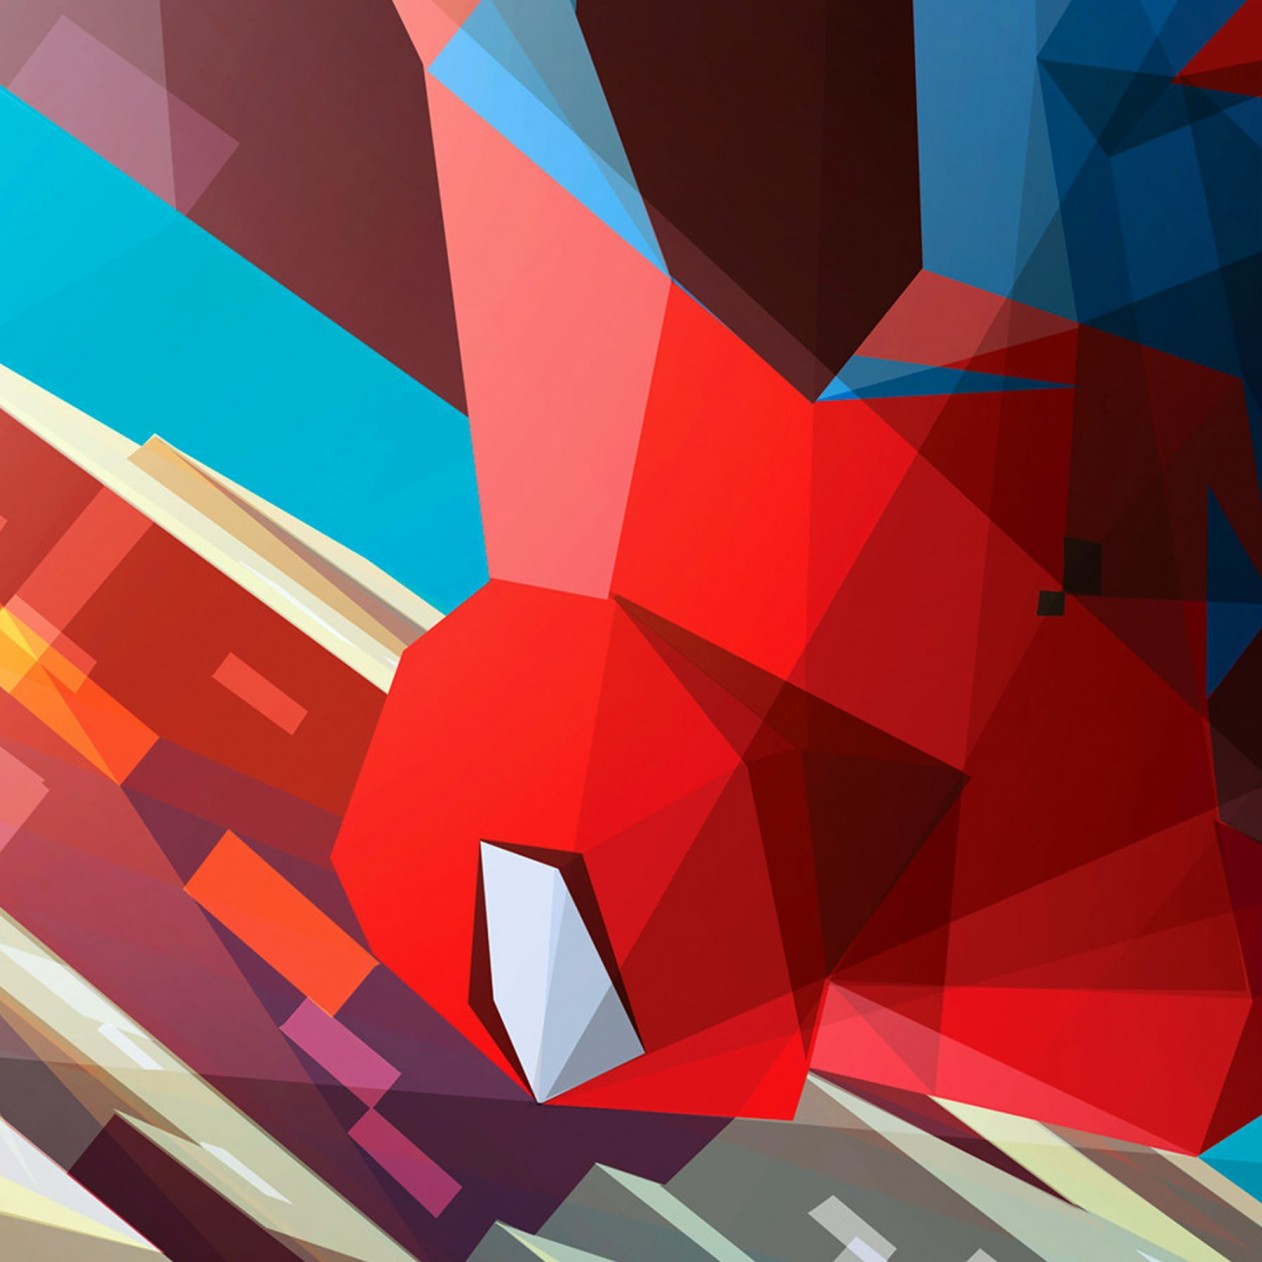 Spiderman Low Poly Illustration Wallpaper for Apple iPad mini